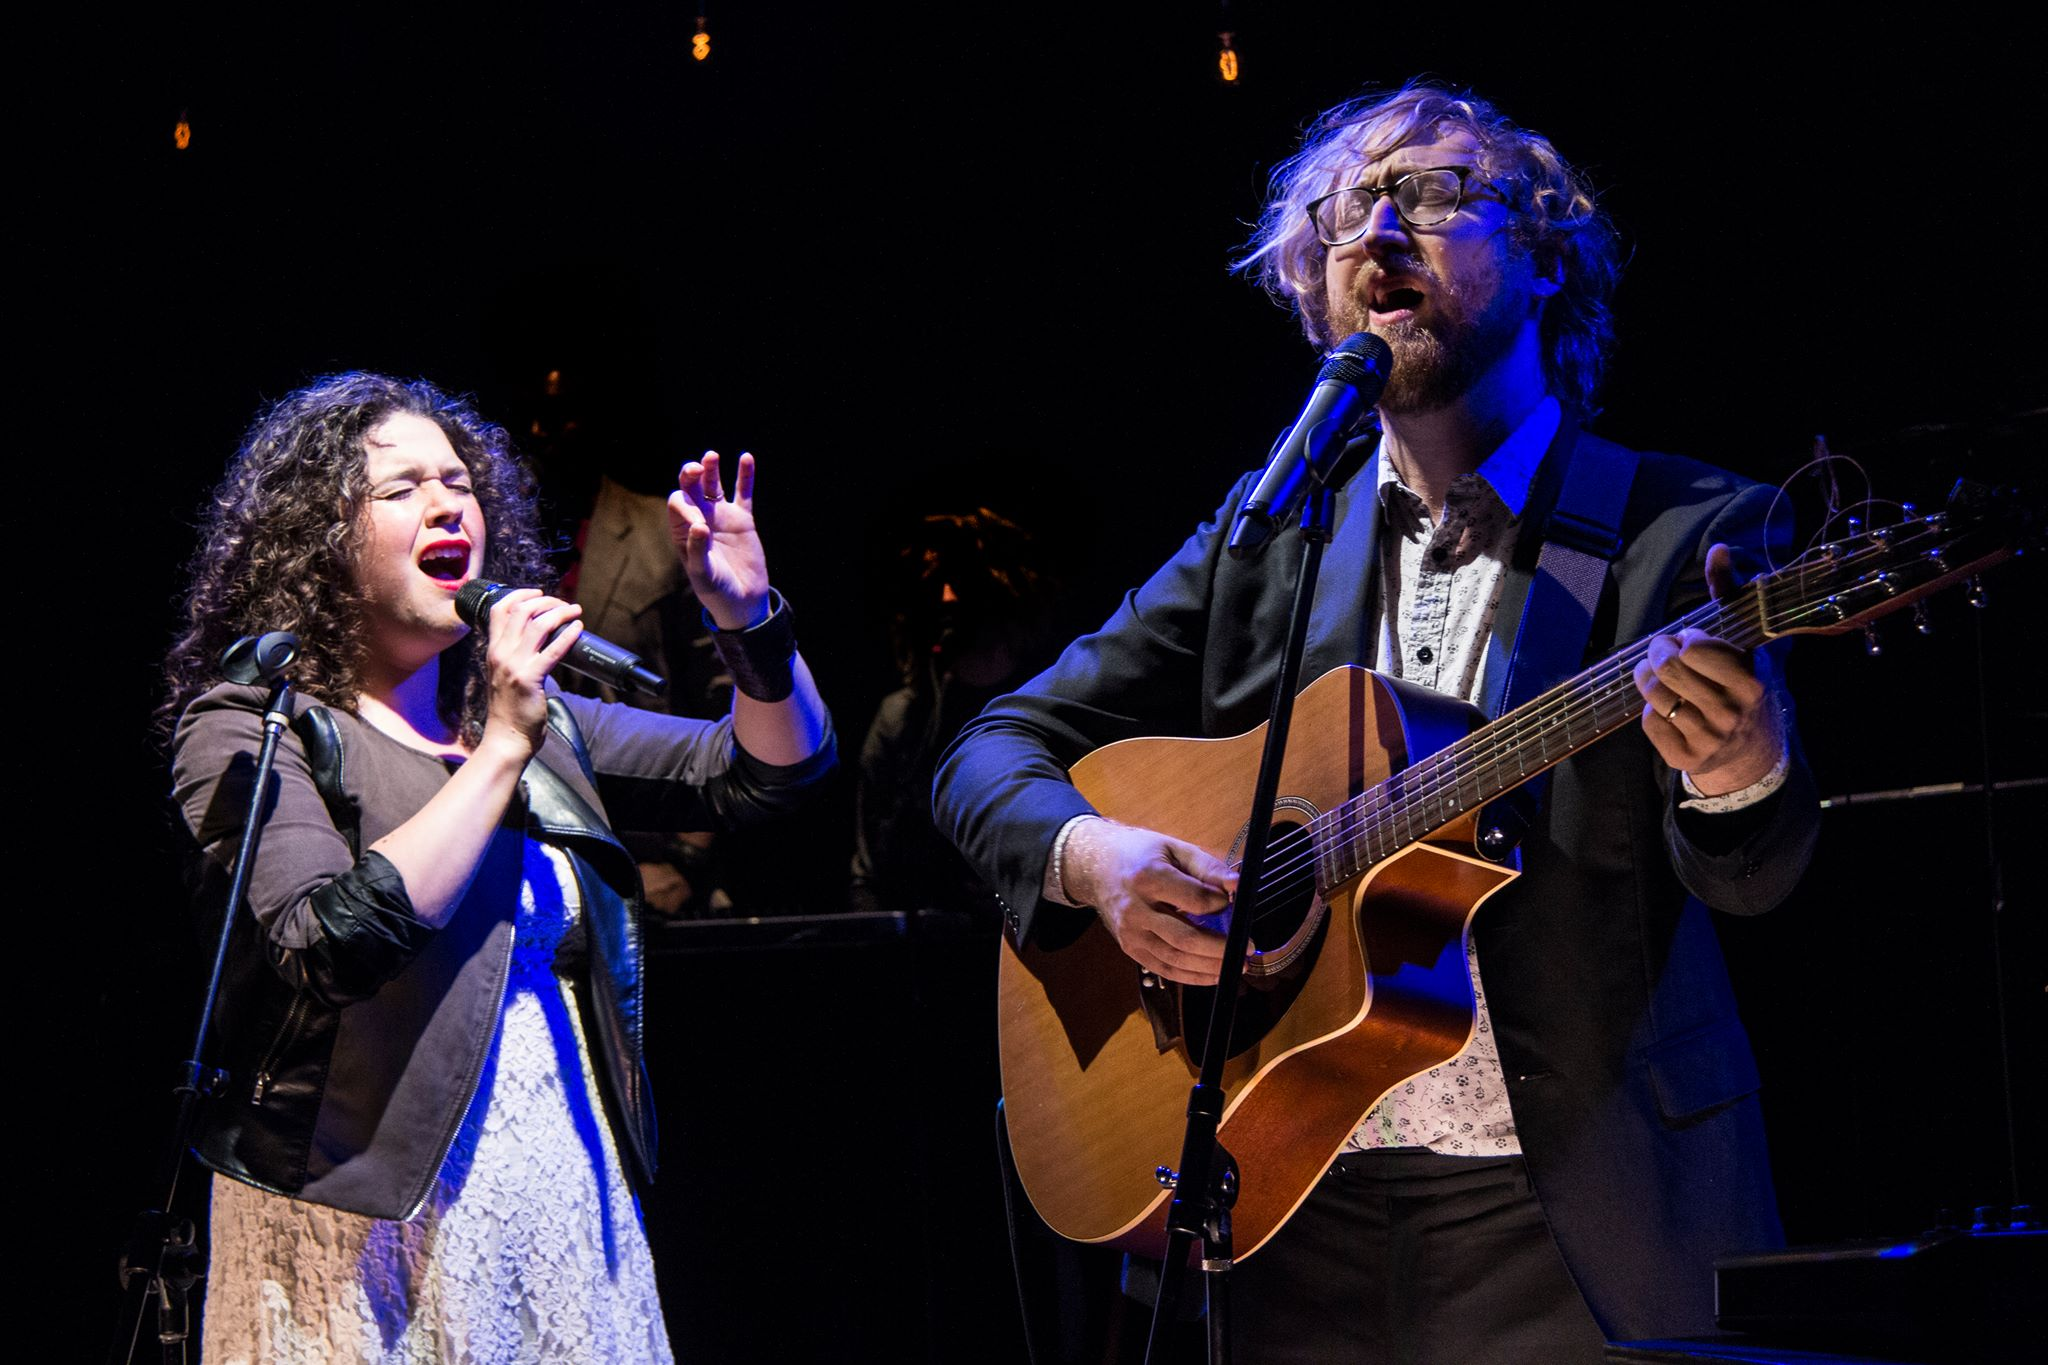 """The Bengsons Tell Story of Romance With Indie-Folk in """"Hundred Days"""""""